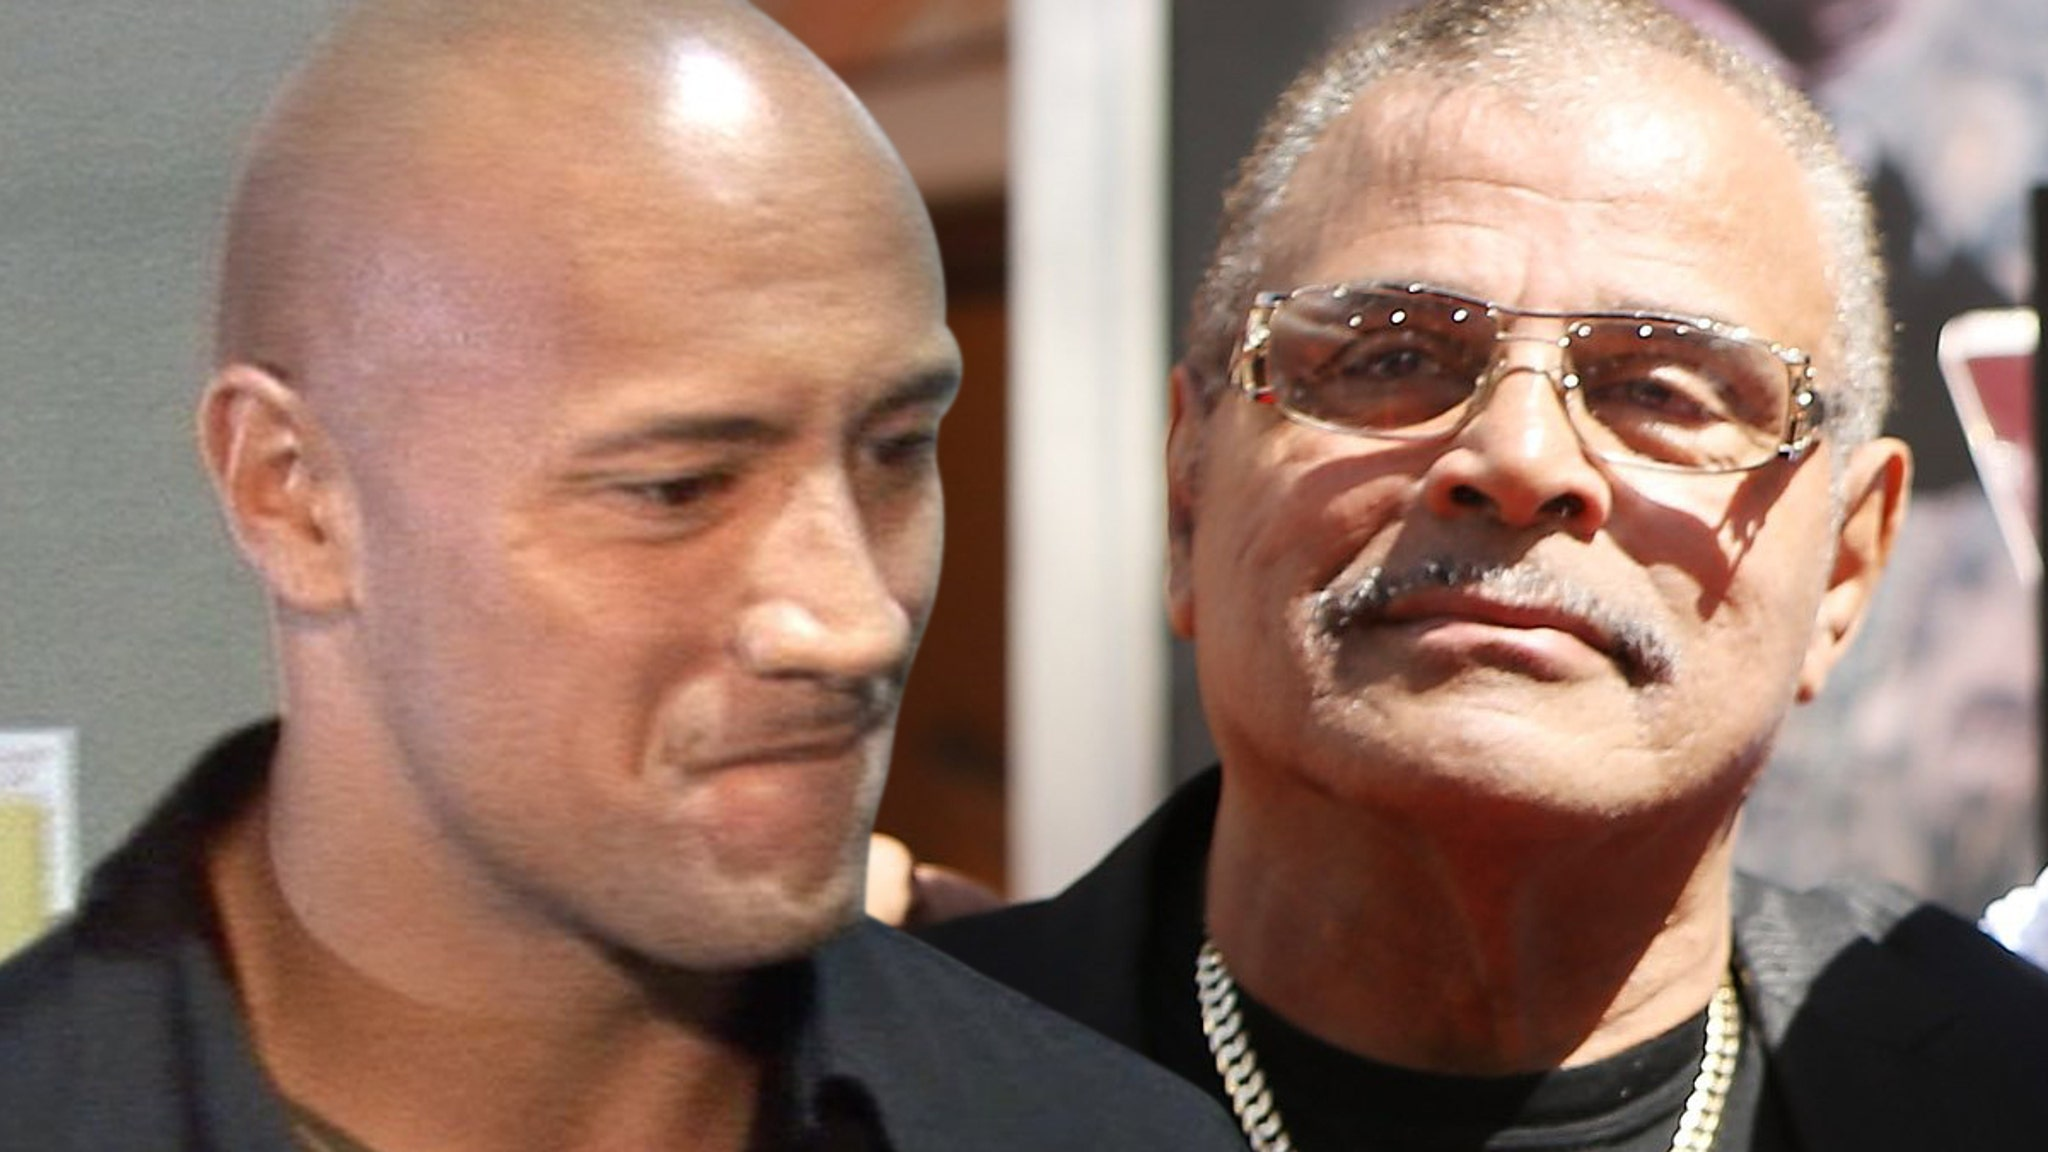 Dwayne Johnson Post Emotional Goodbye To Dad After Death, 'I'm In Pain'